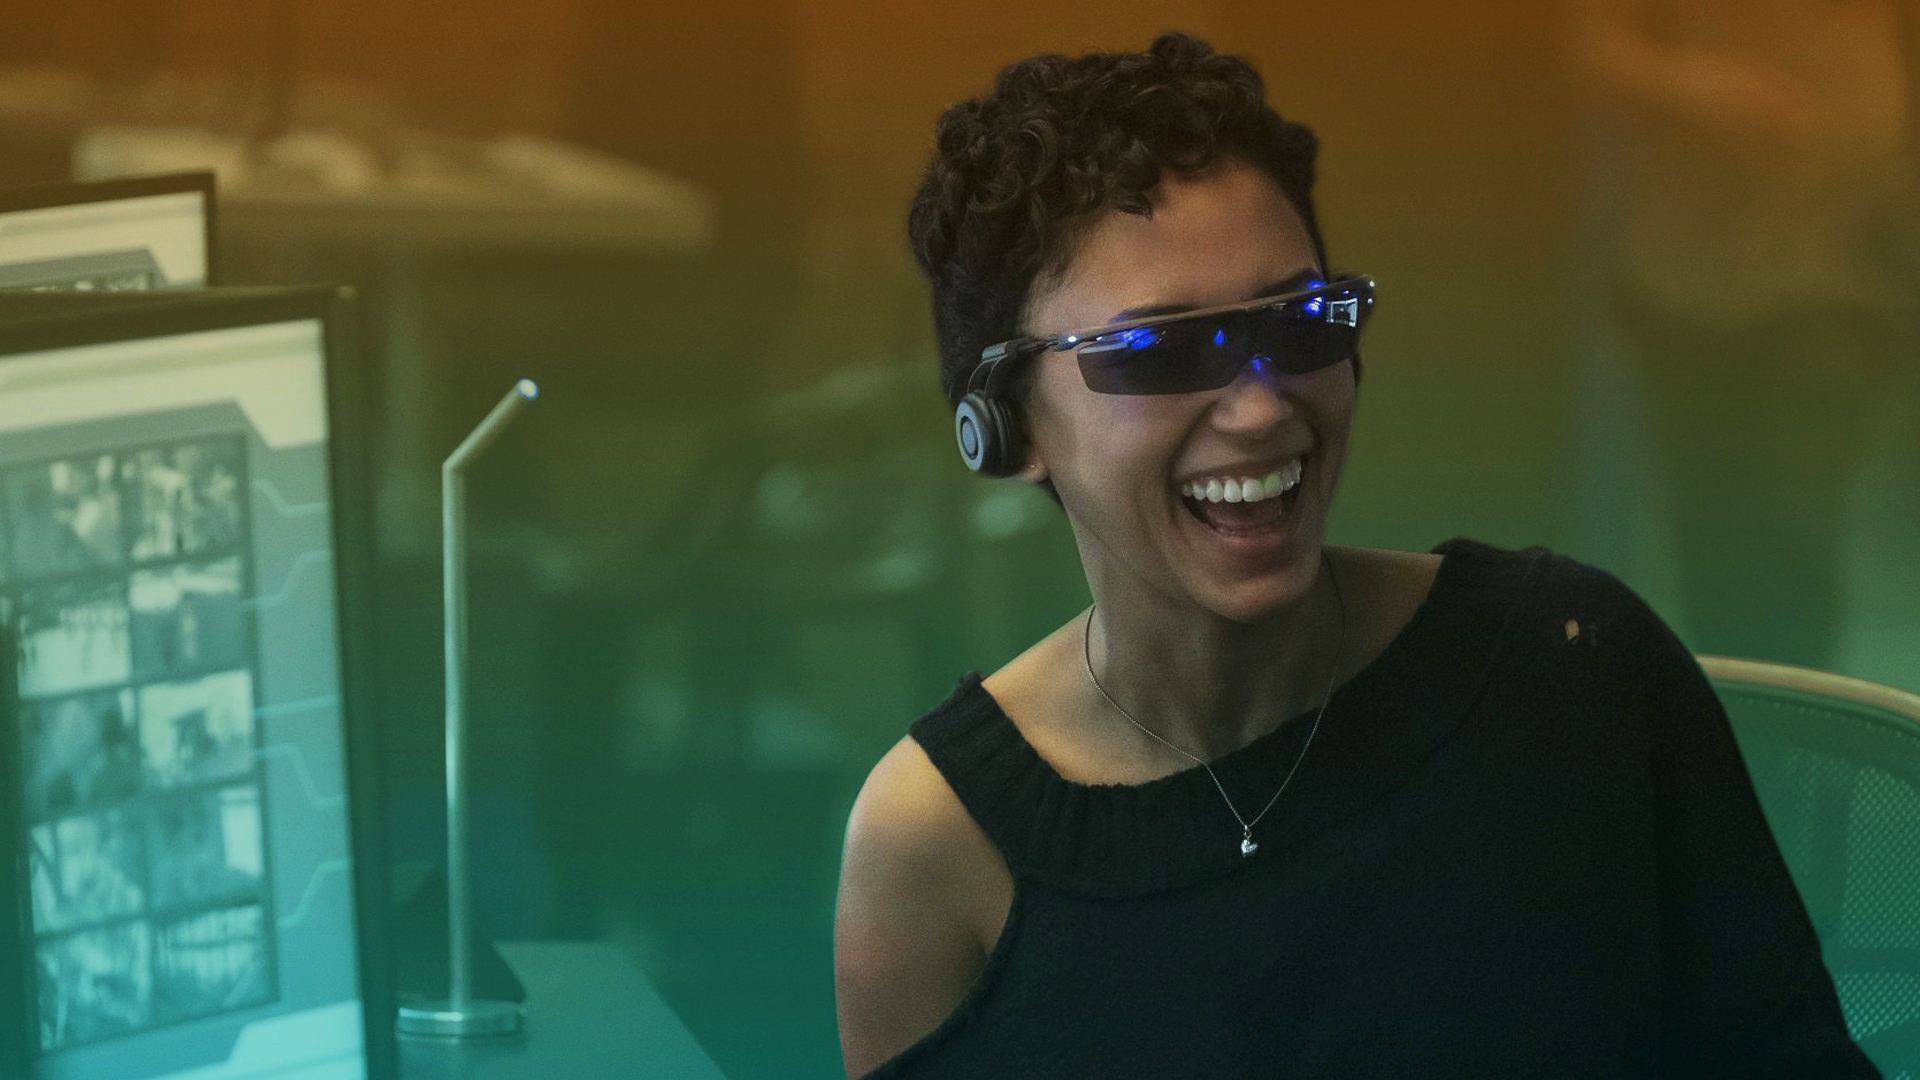 woman wearing sunglasses and headphones laughing